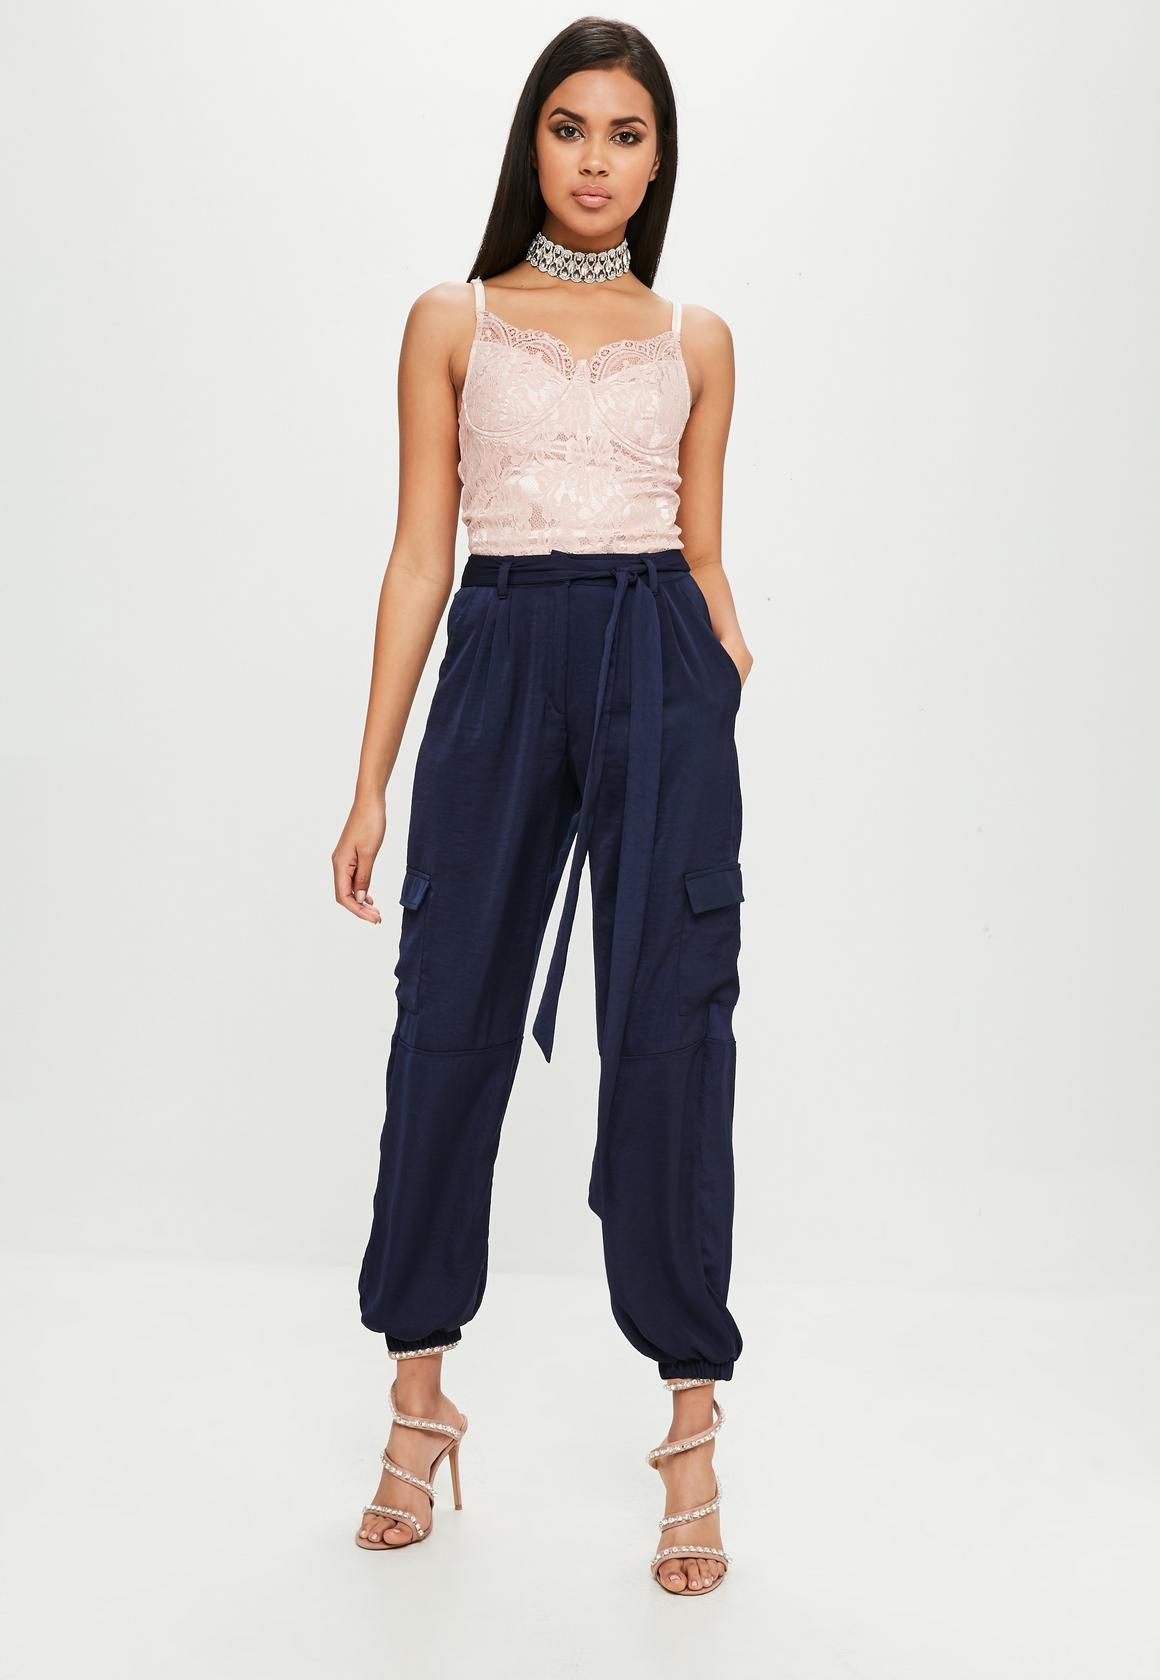 13be8cc0ba2e1 Missguided - Carli Bybel x Missguided Navy Satin Cargo Pants ...